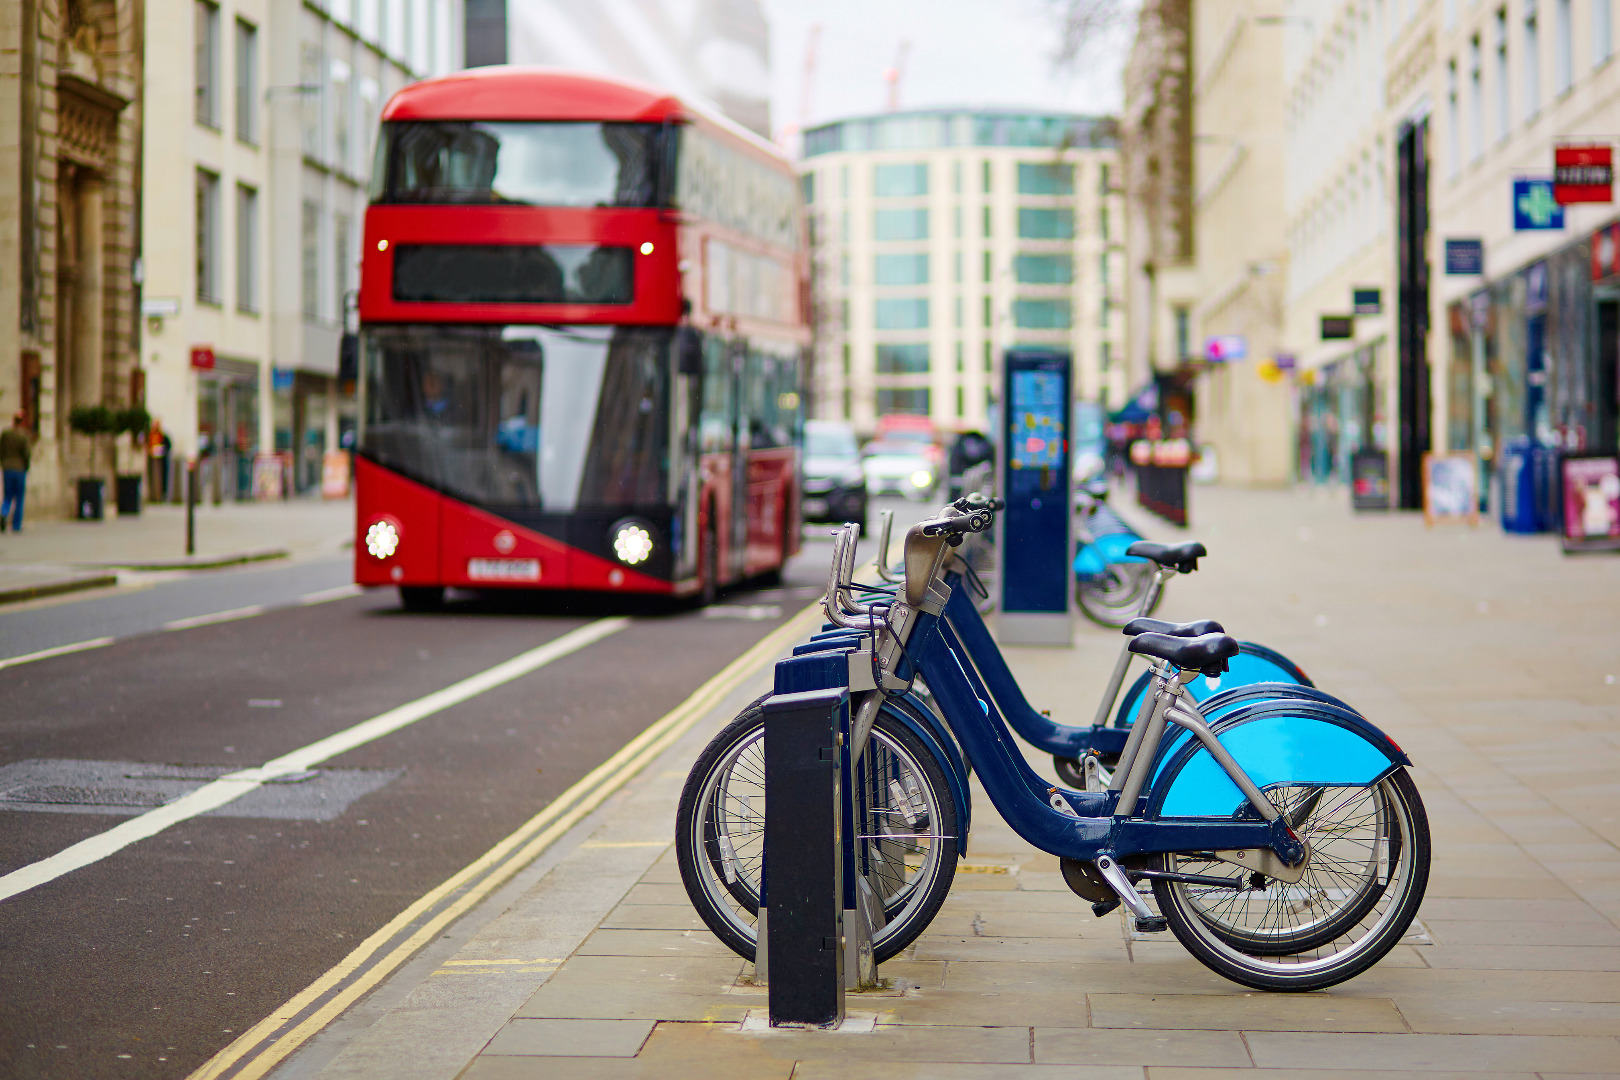 A double decker bus and public bikes in London